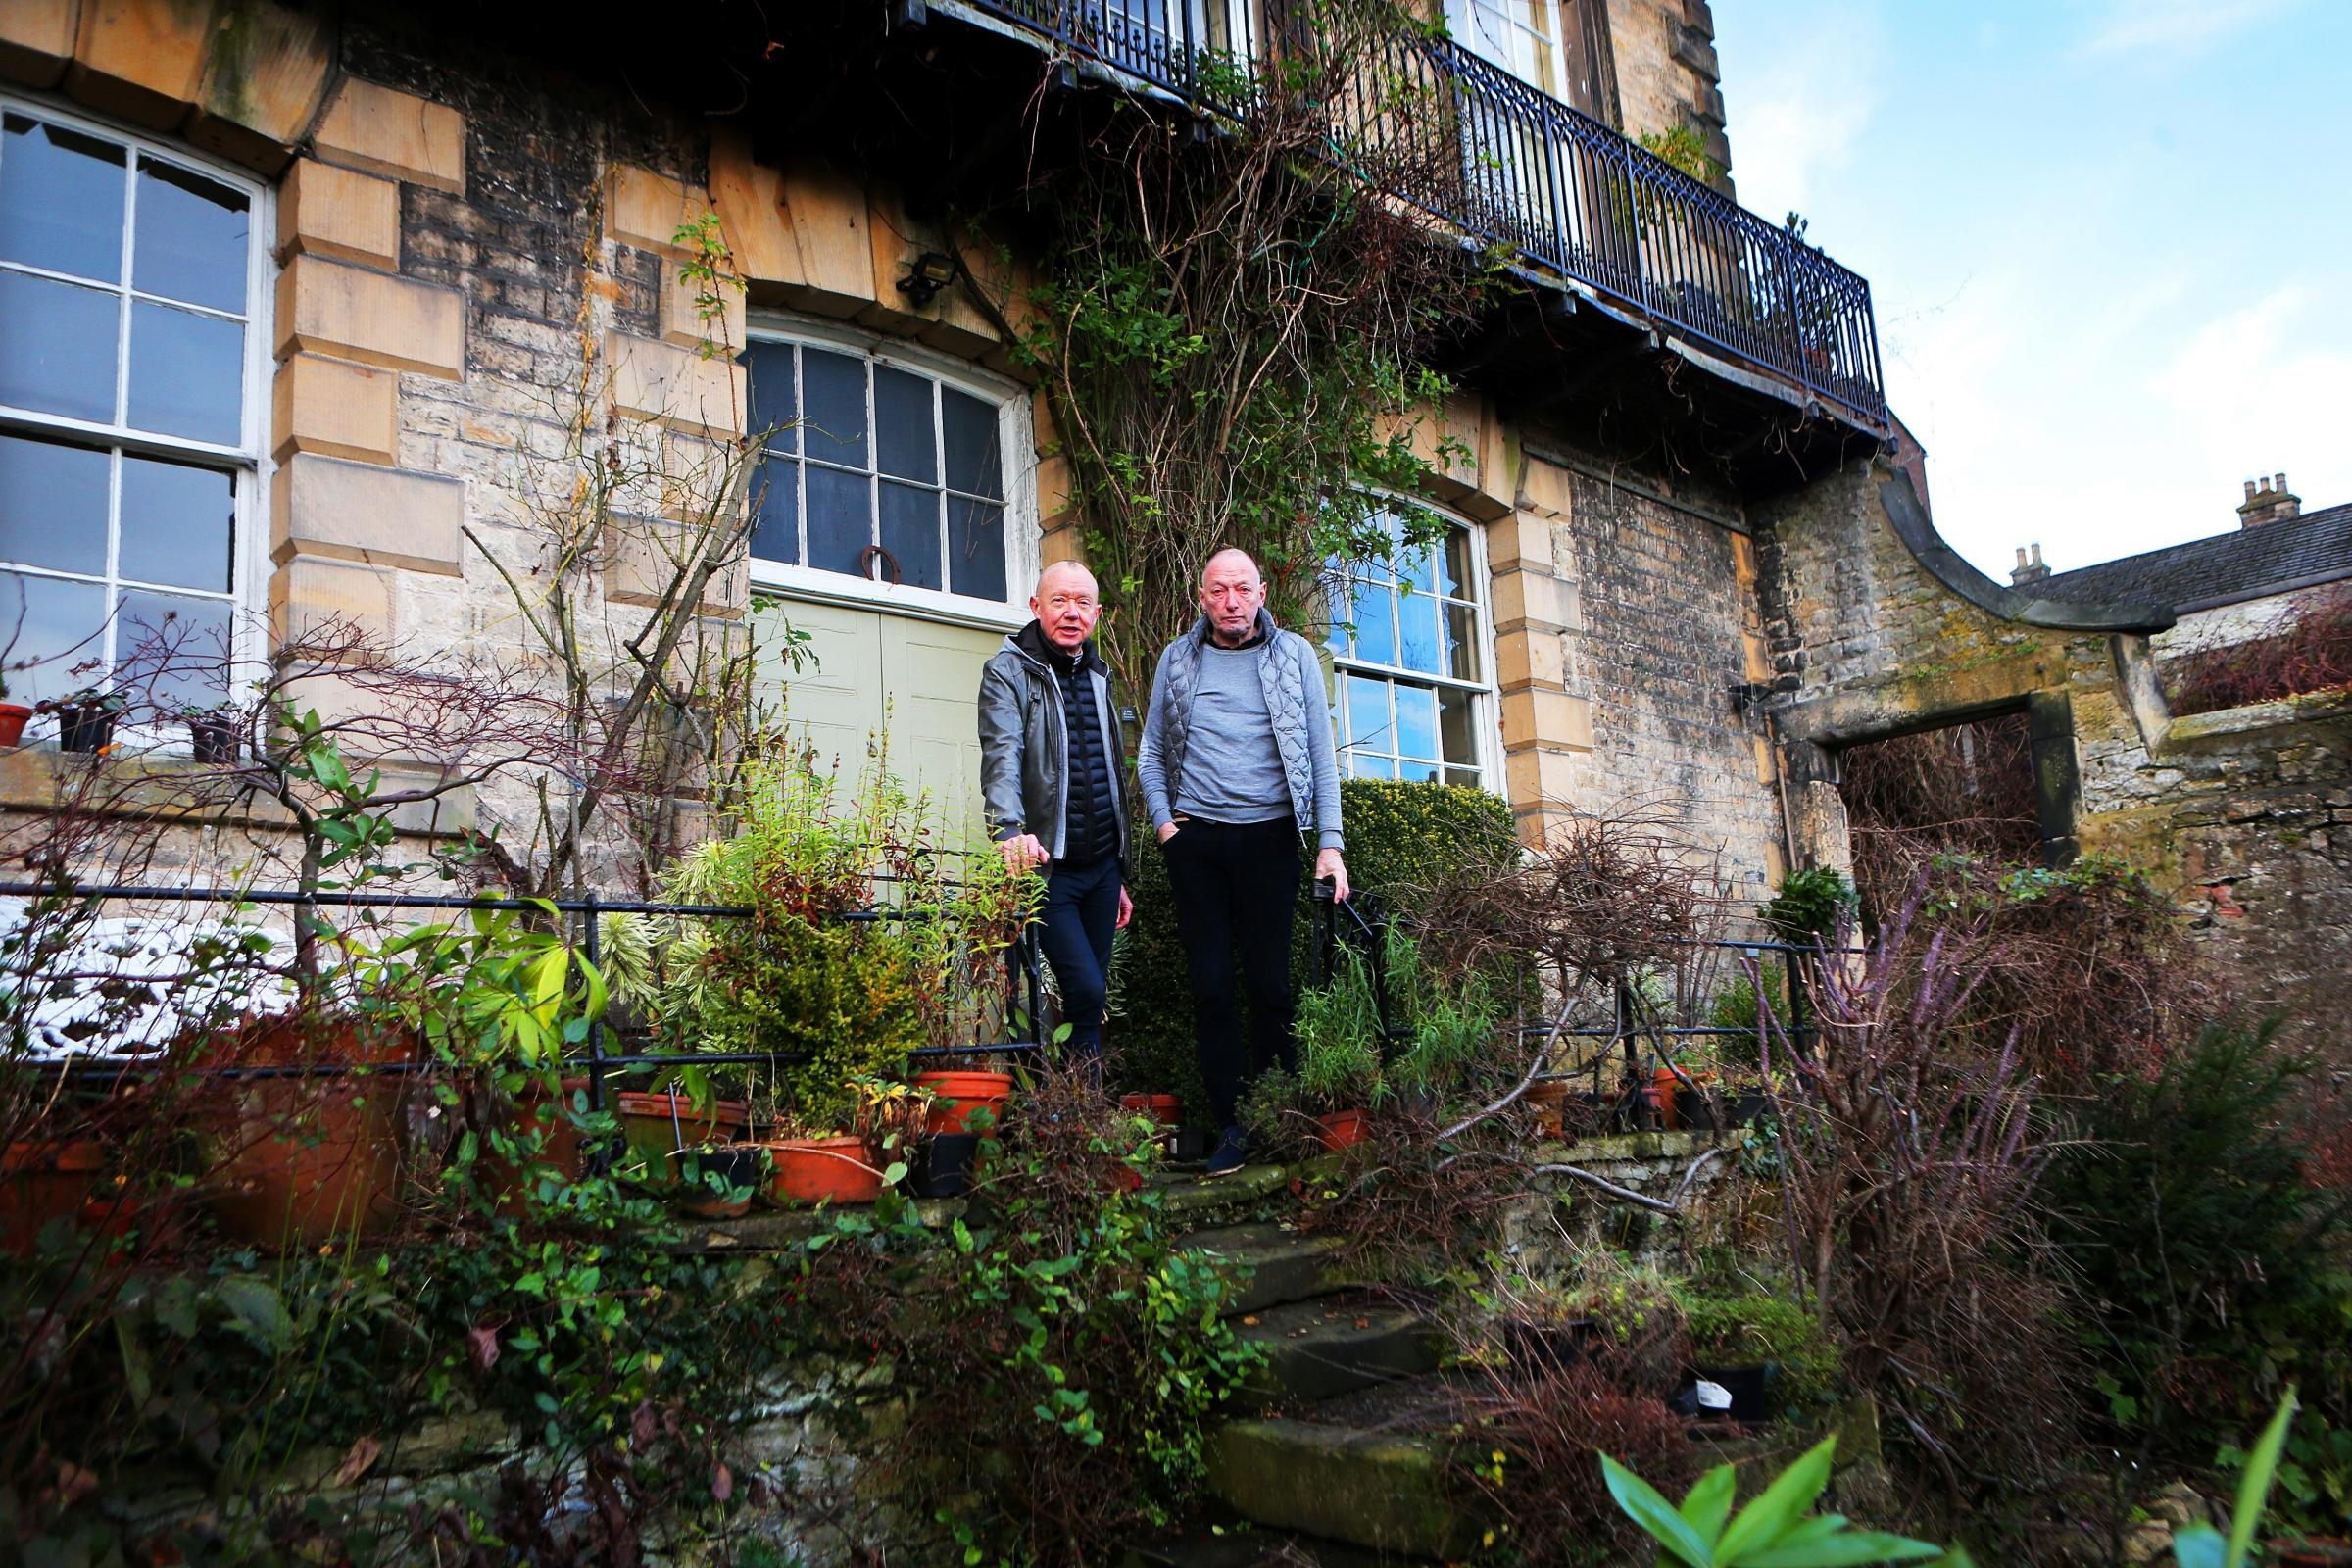 Garden to appear on alan titchmarsh show after being Austin home amp garden show